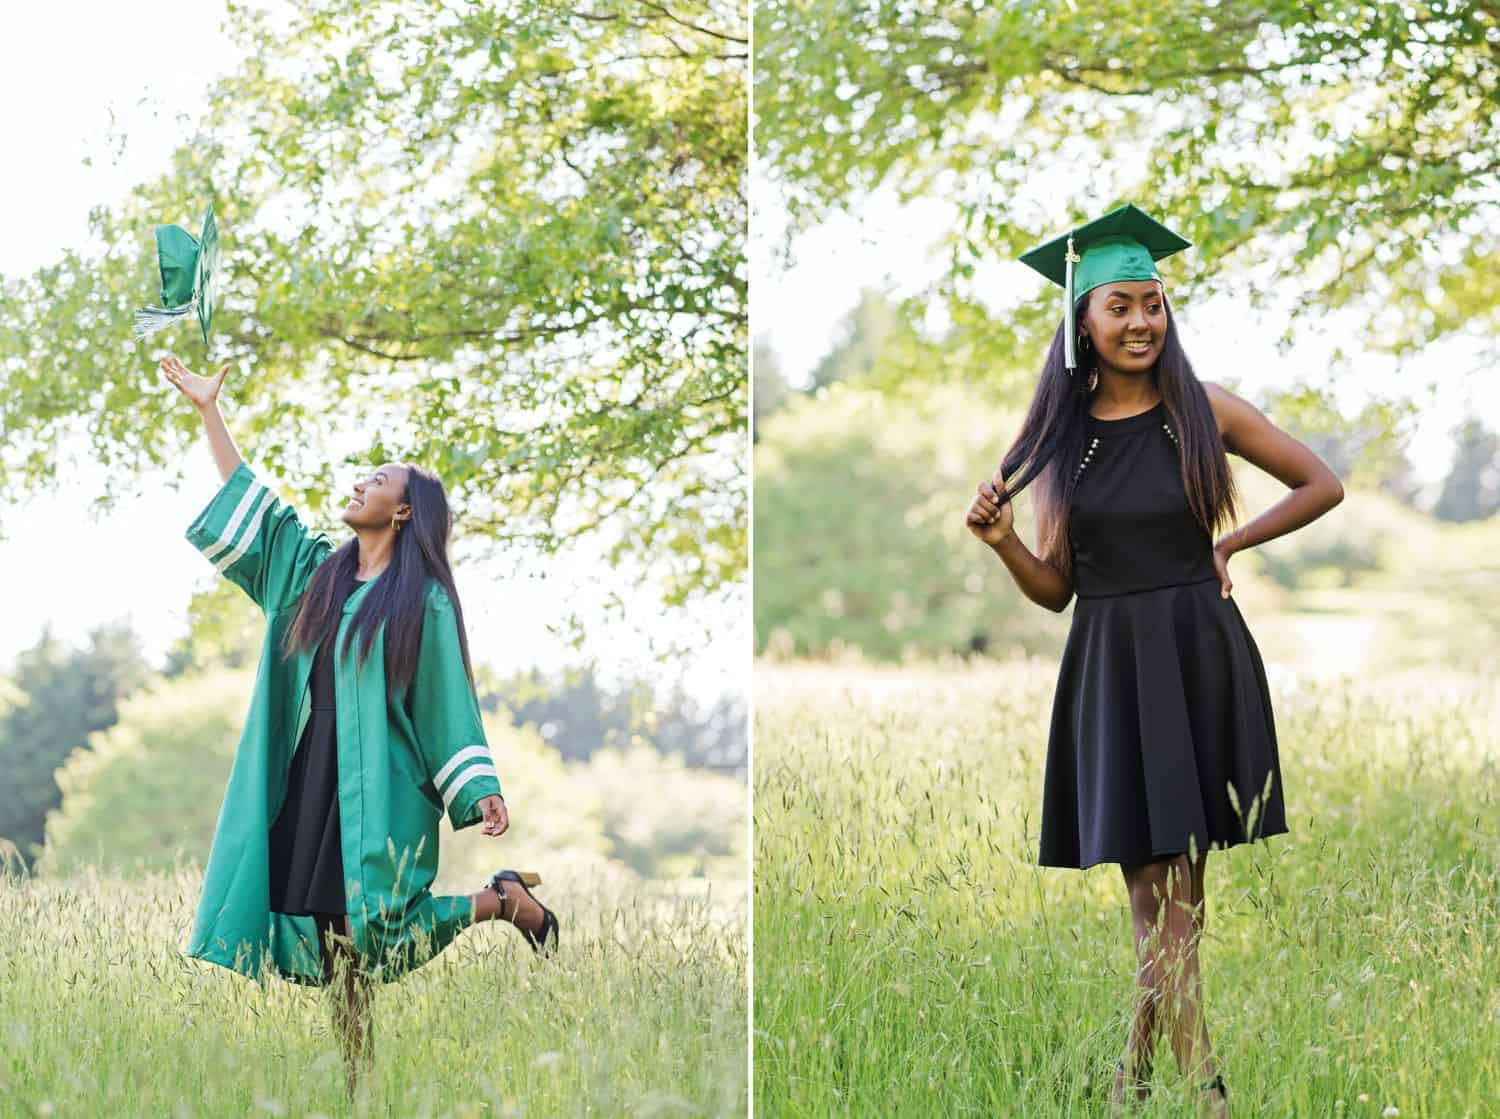 A high school senior girl poses wearing a black dress under her green graduation gown. She stands in a field and throws her cap into the air.